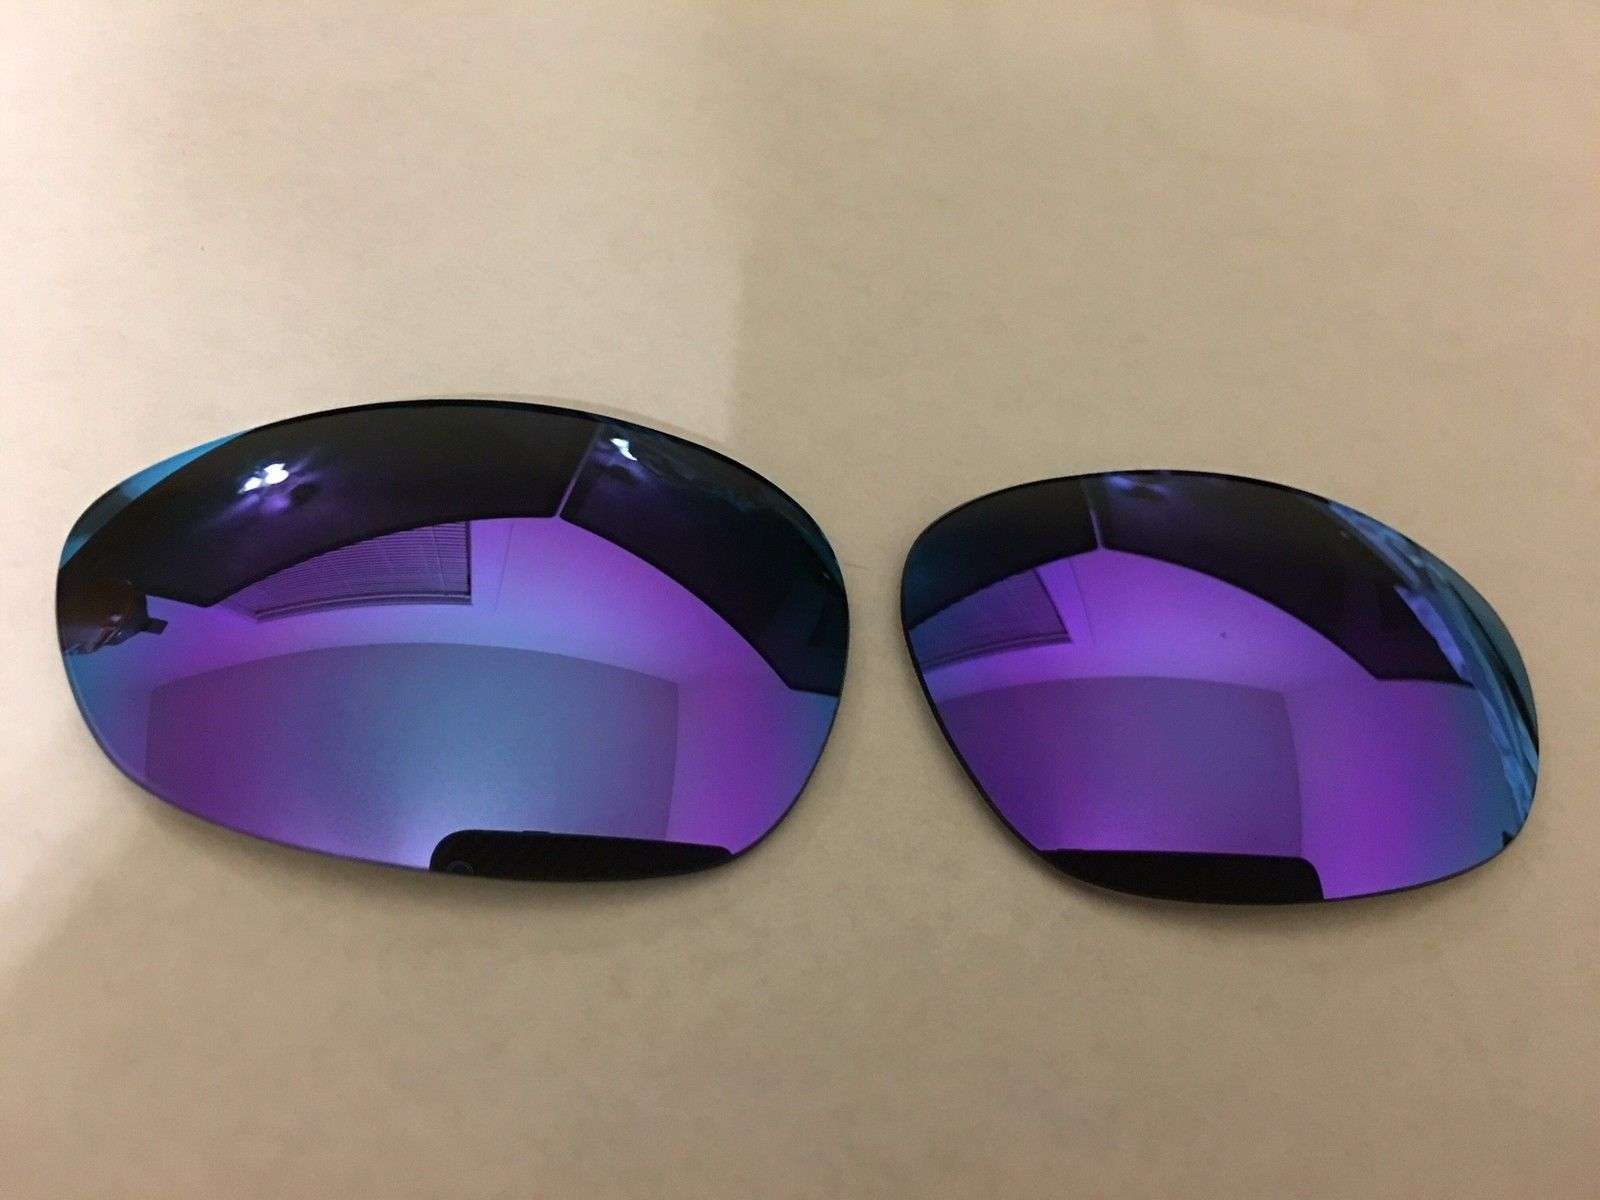 Two Pairs of XX (X-Man Plasma Refinish) with Lens Options - IMG_8452.JPG